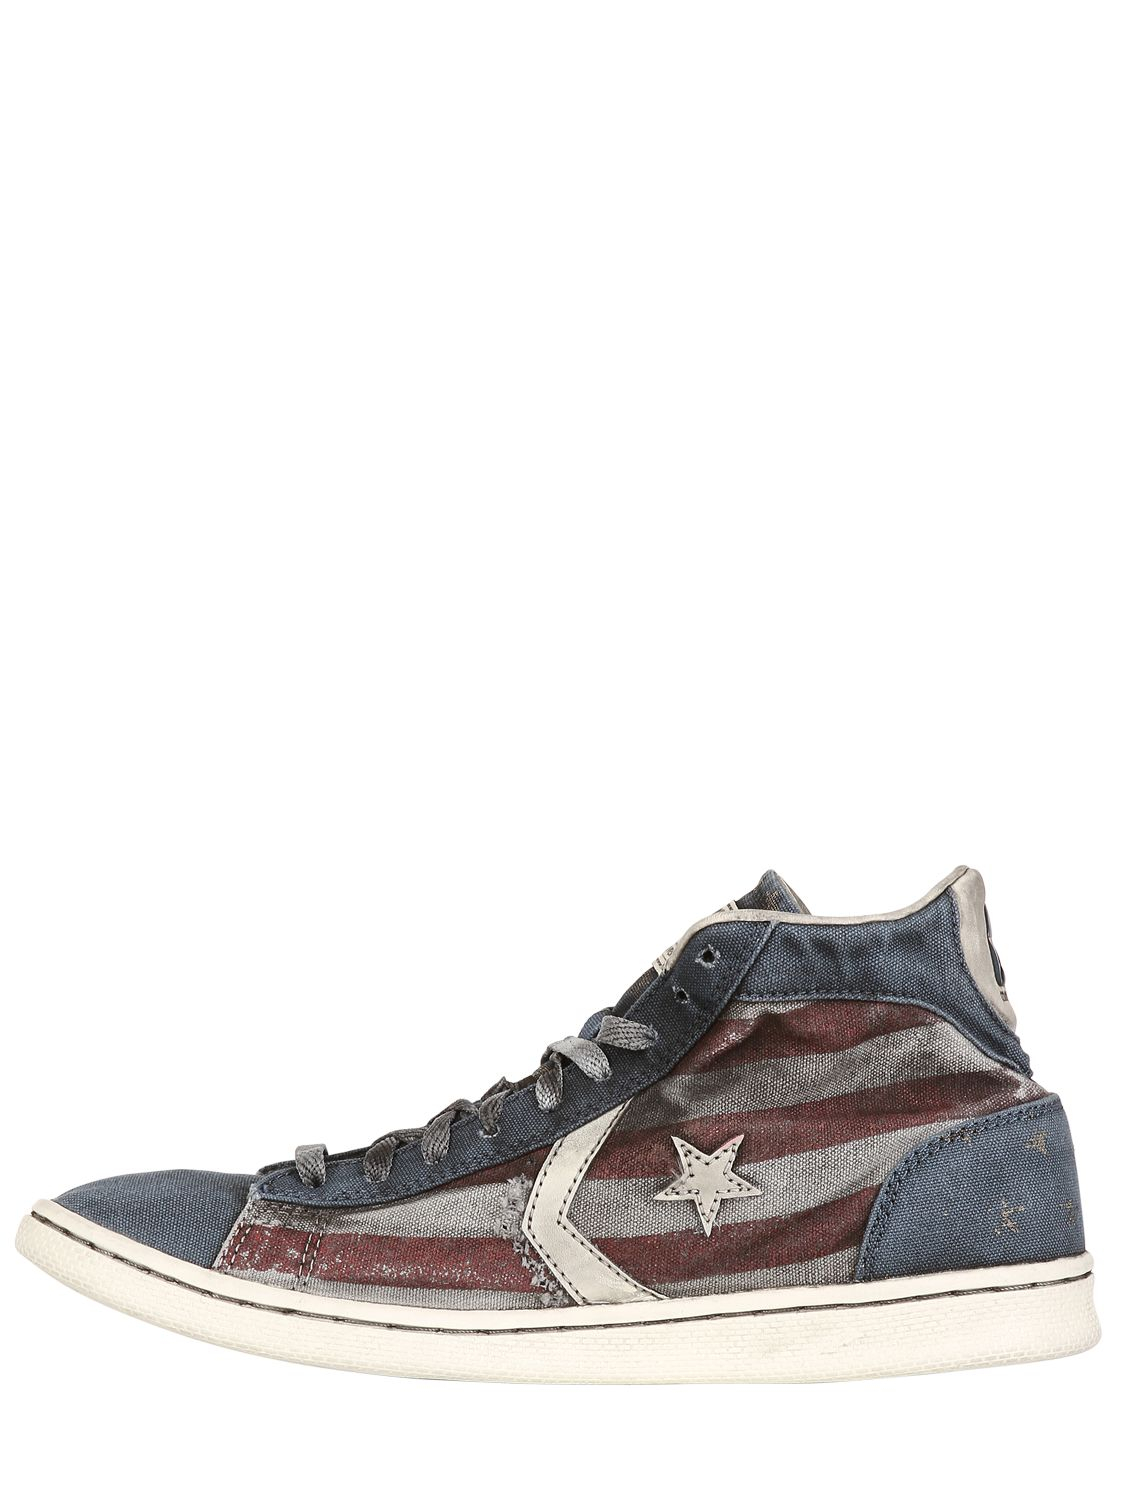 Converse Smoke Pro Leather Mid Canvas Sneakers In Red